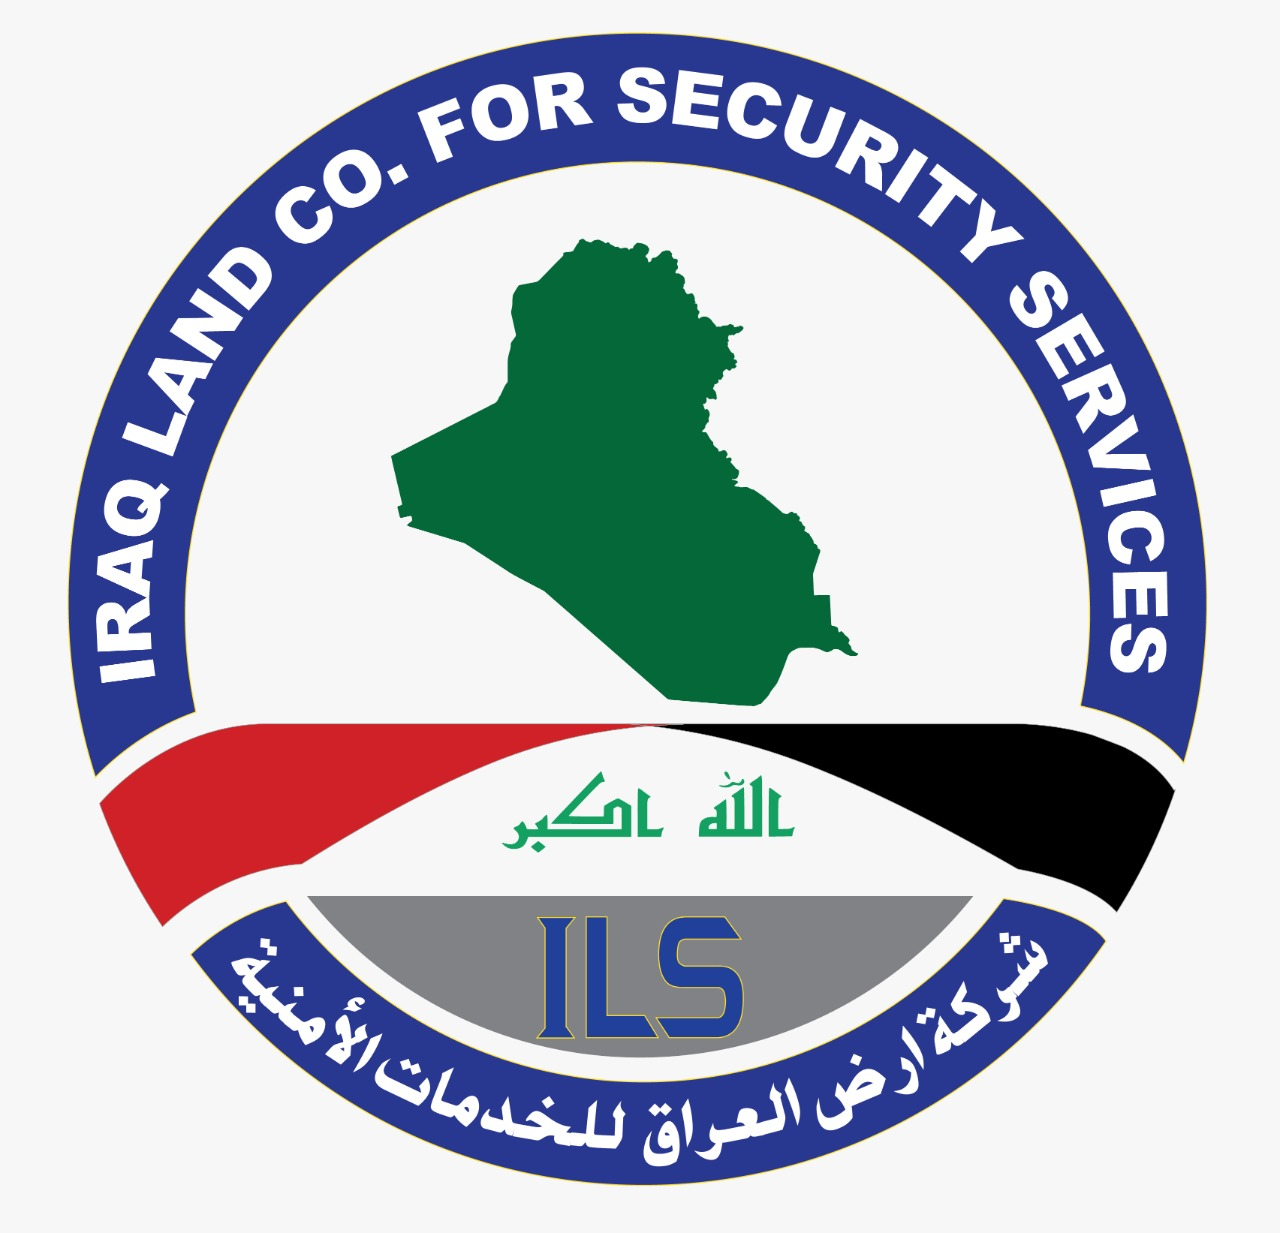 Iraq Land Company for Security Services